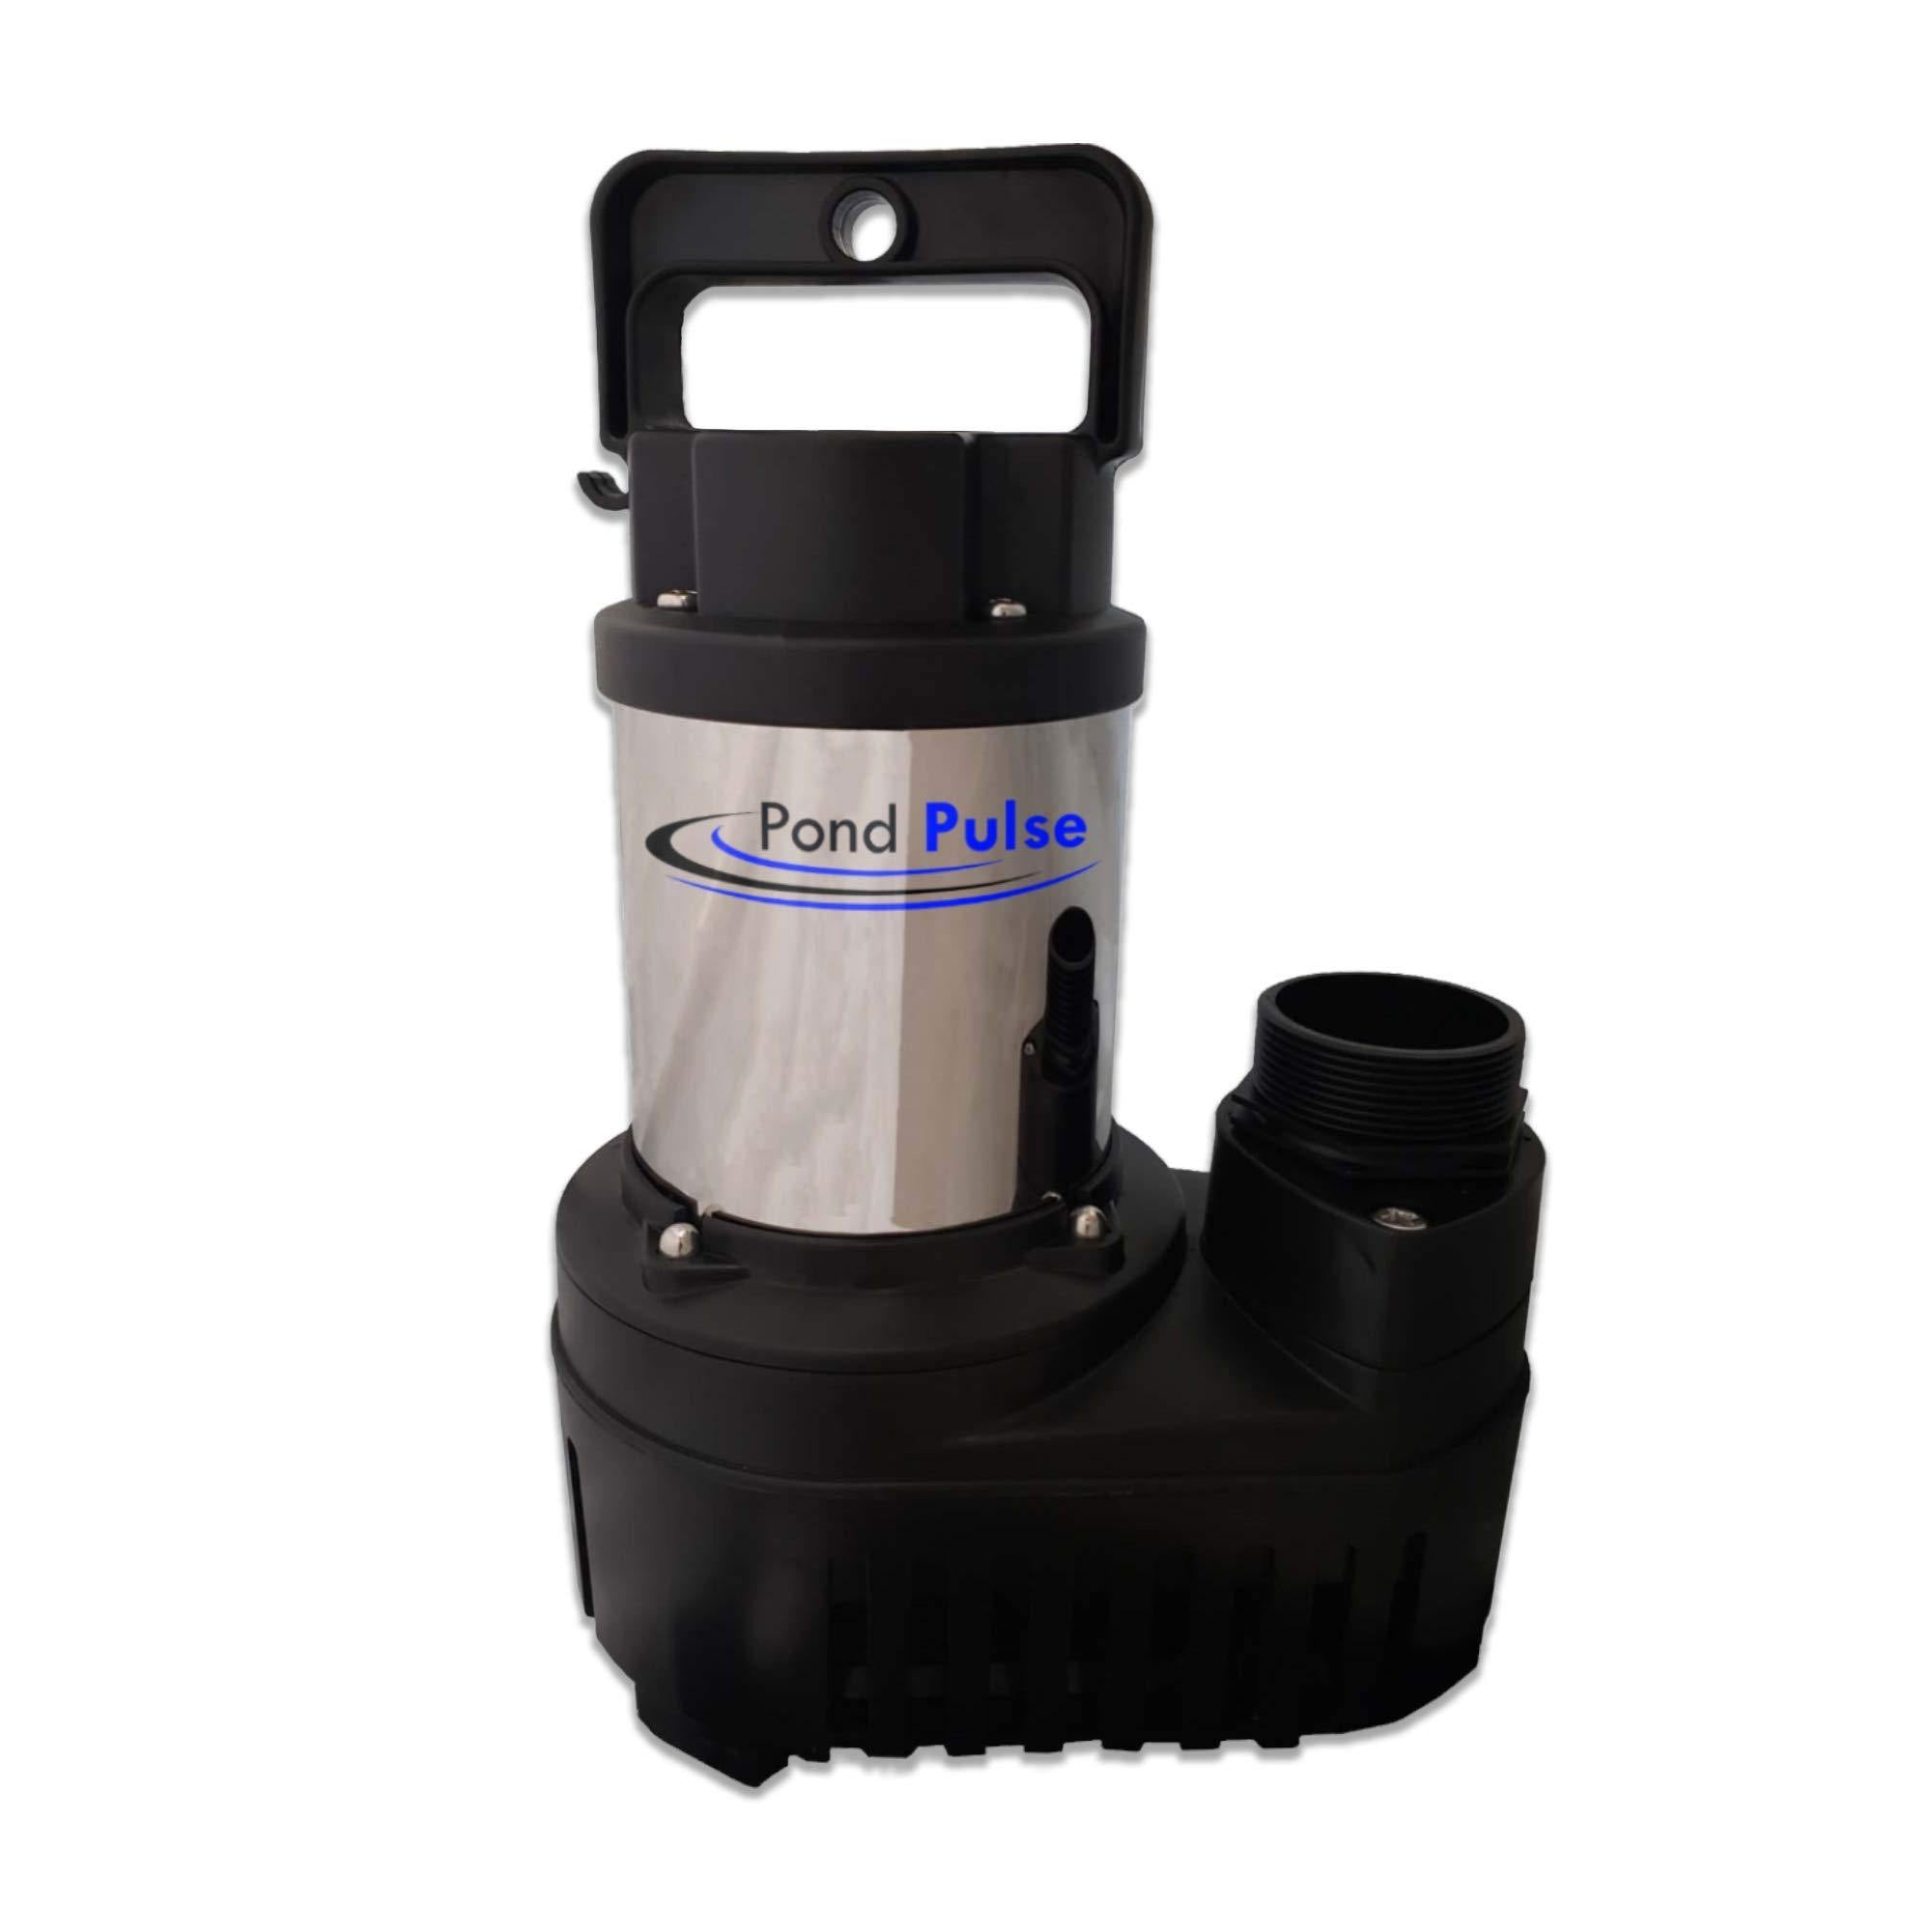 Pond Pulse 4,200 GPH Hybrid Drive Submersible Pump